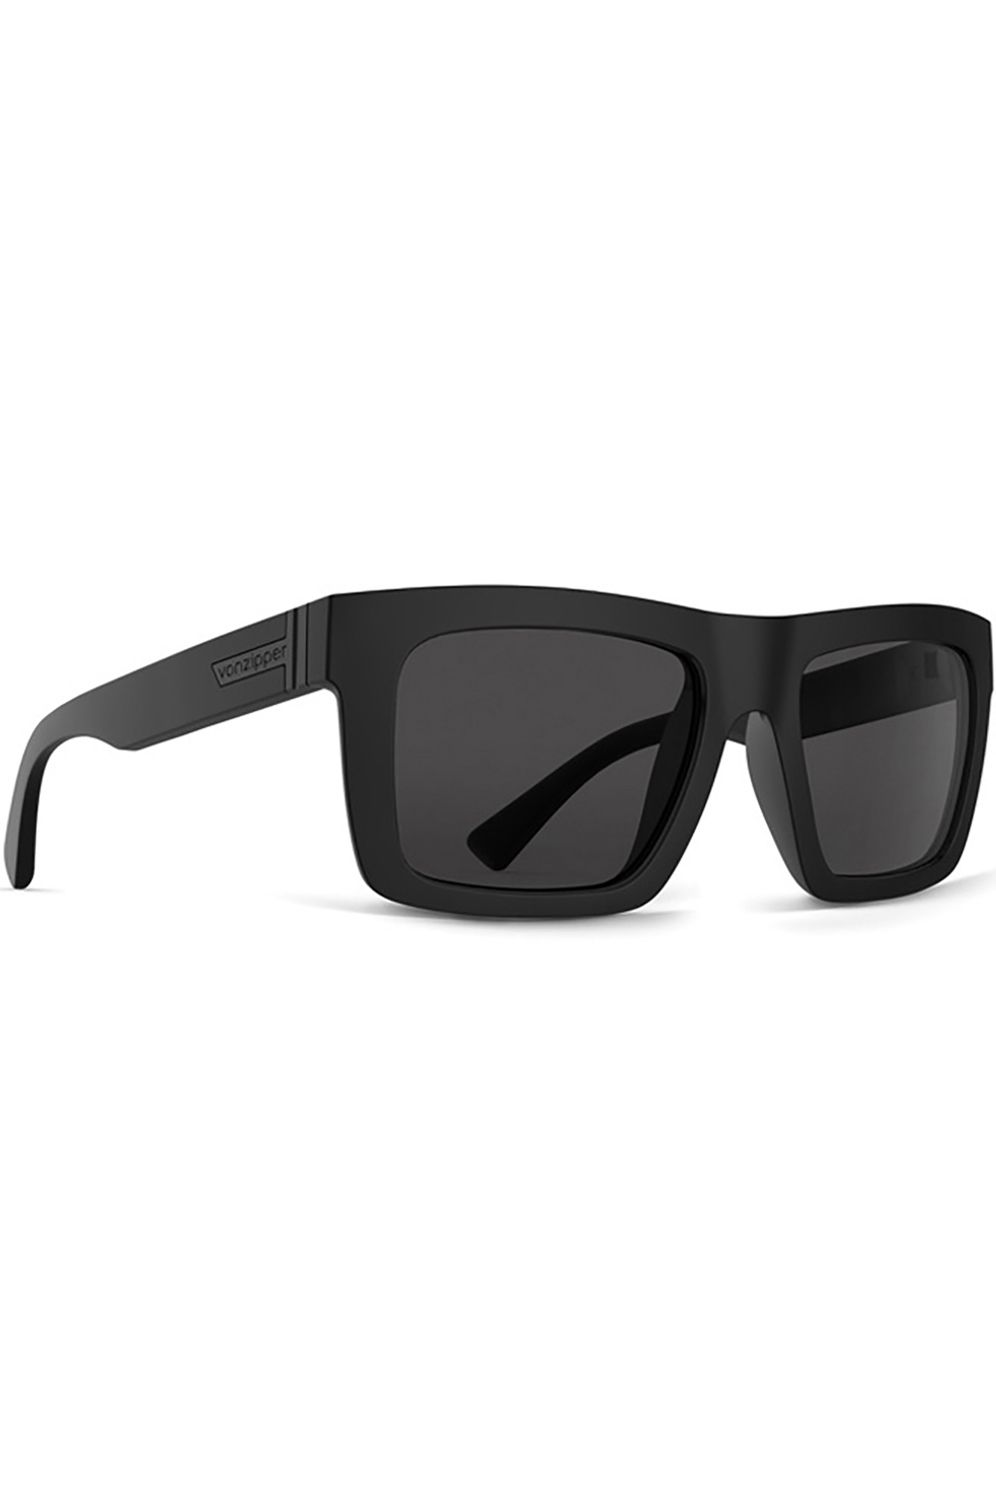 Oculos VonZipper DONMEGA Black Satin / Grey